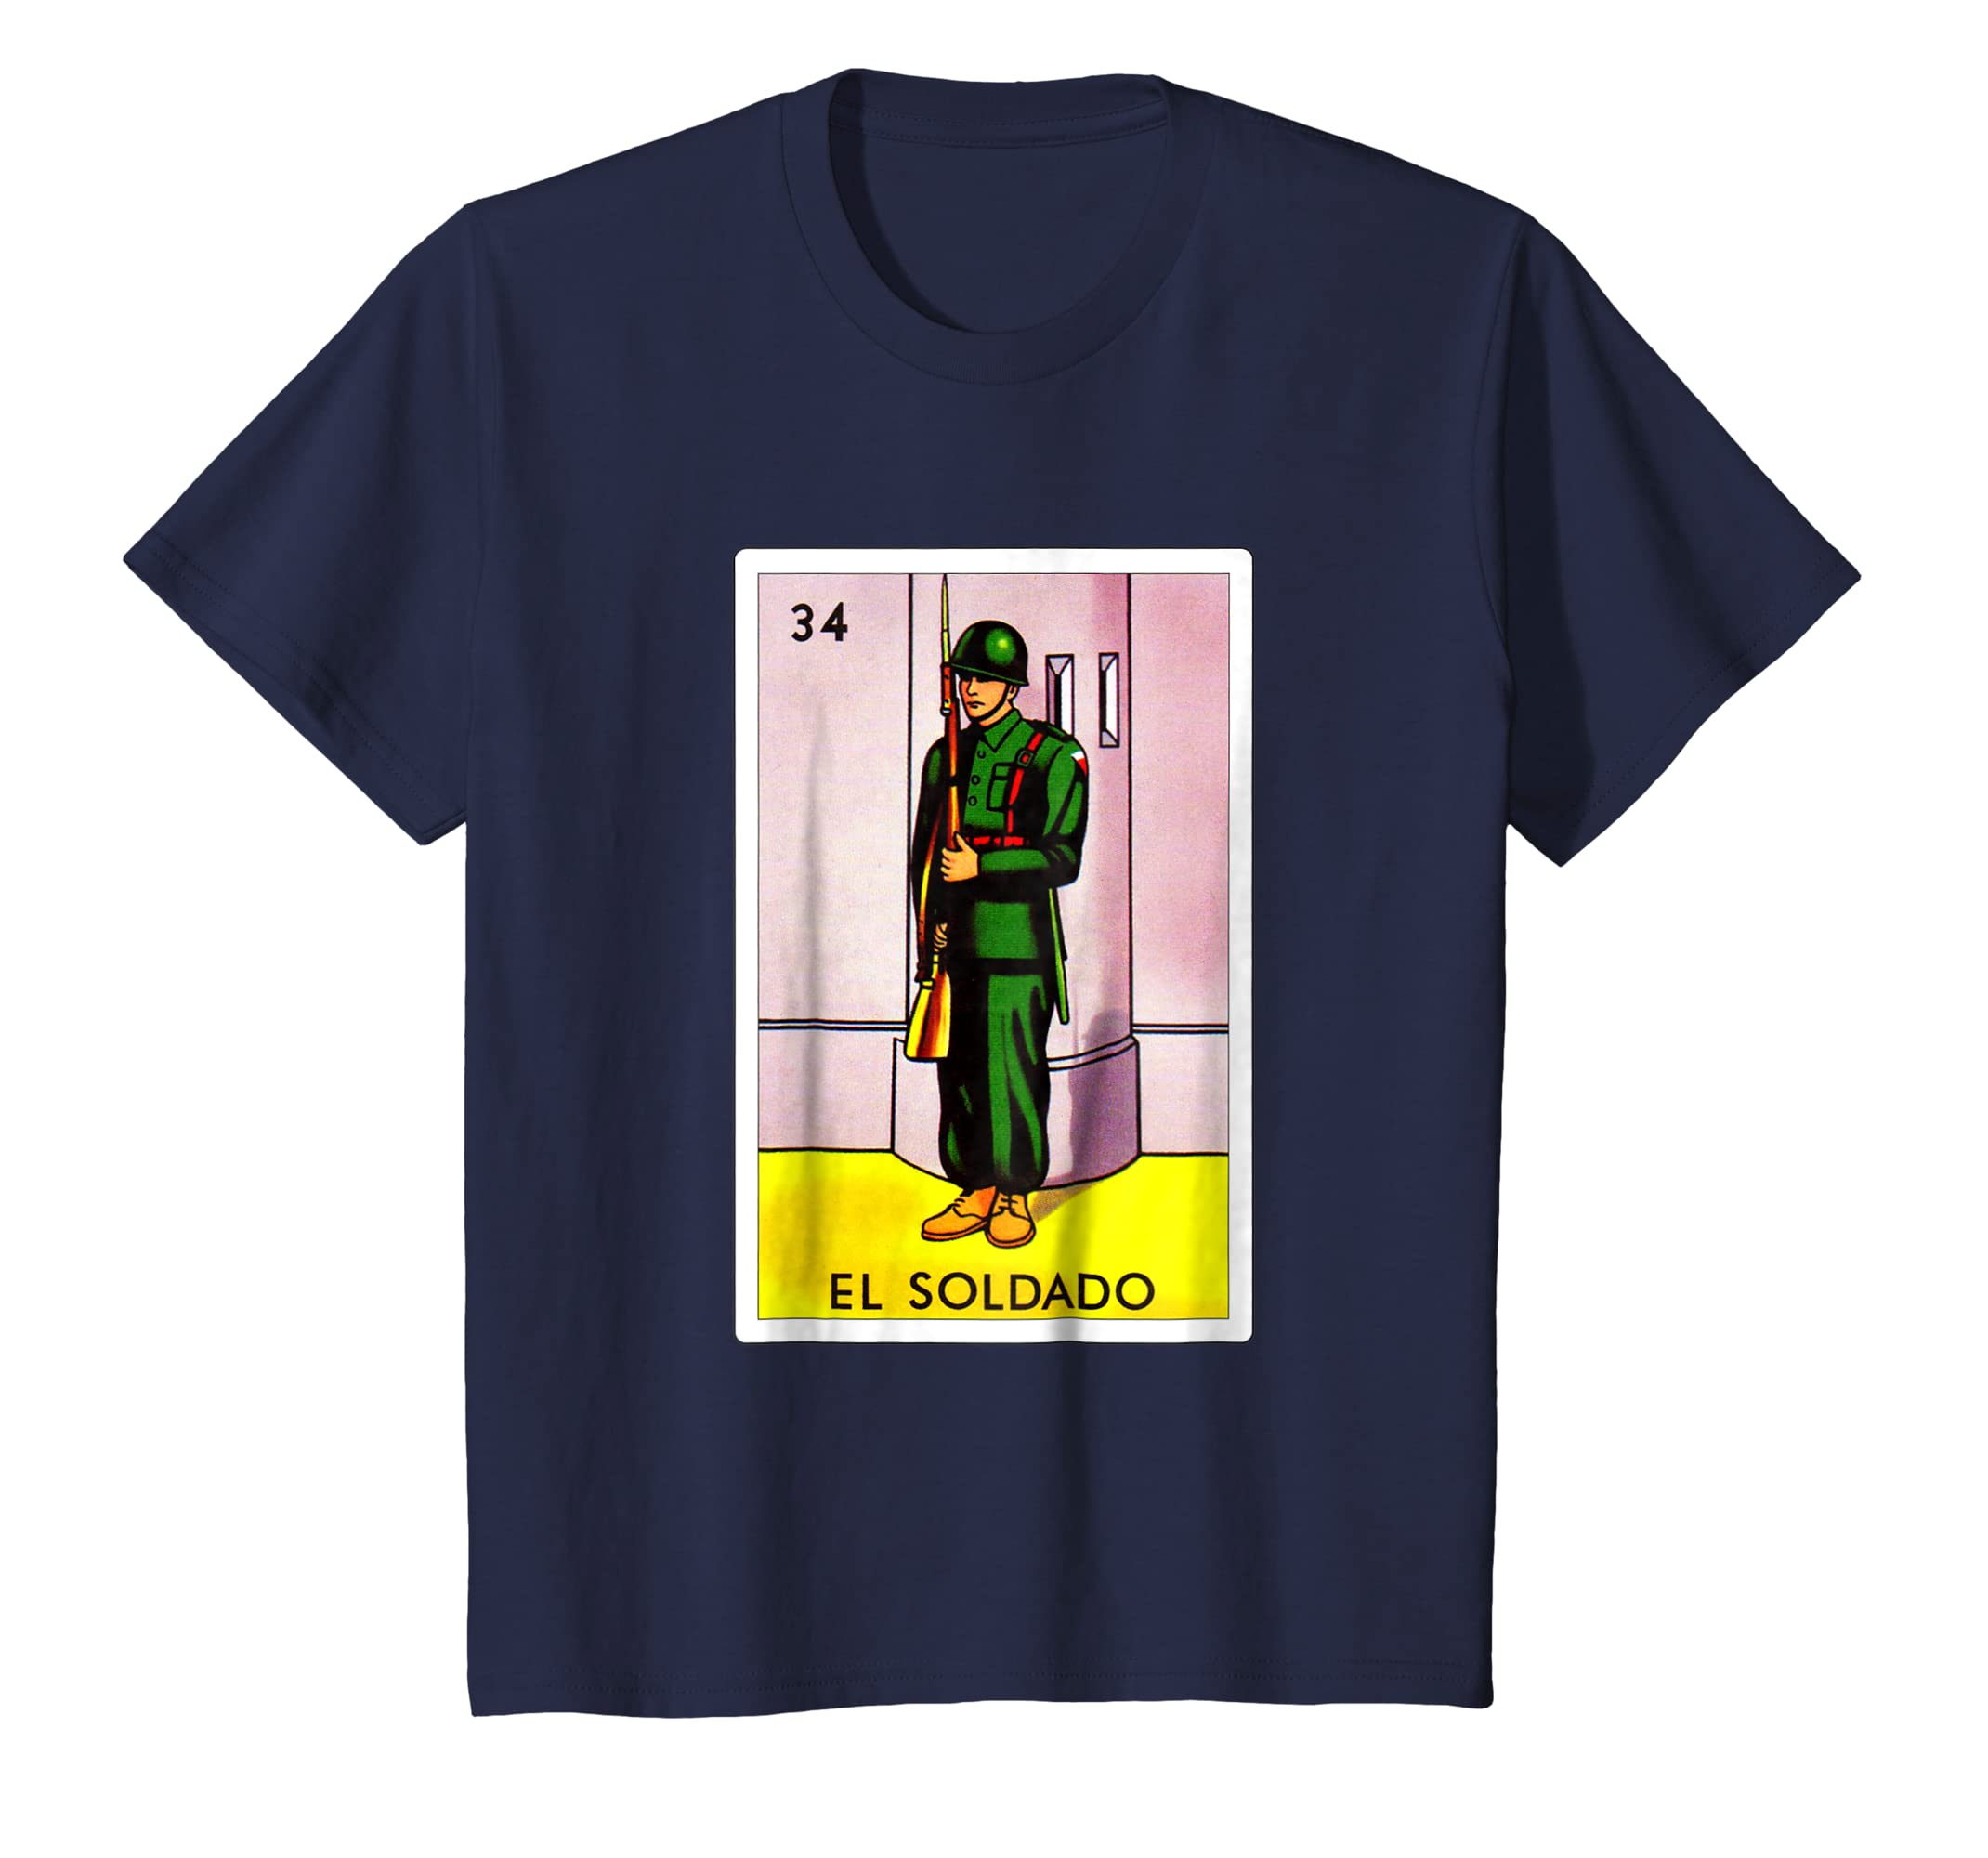 Amazon.com: Loteria Shirts - El Soldado T Shirt Classic Version: Clothing